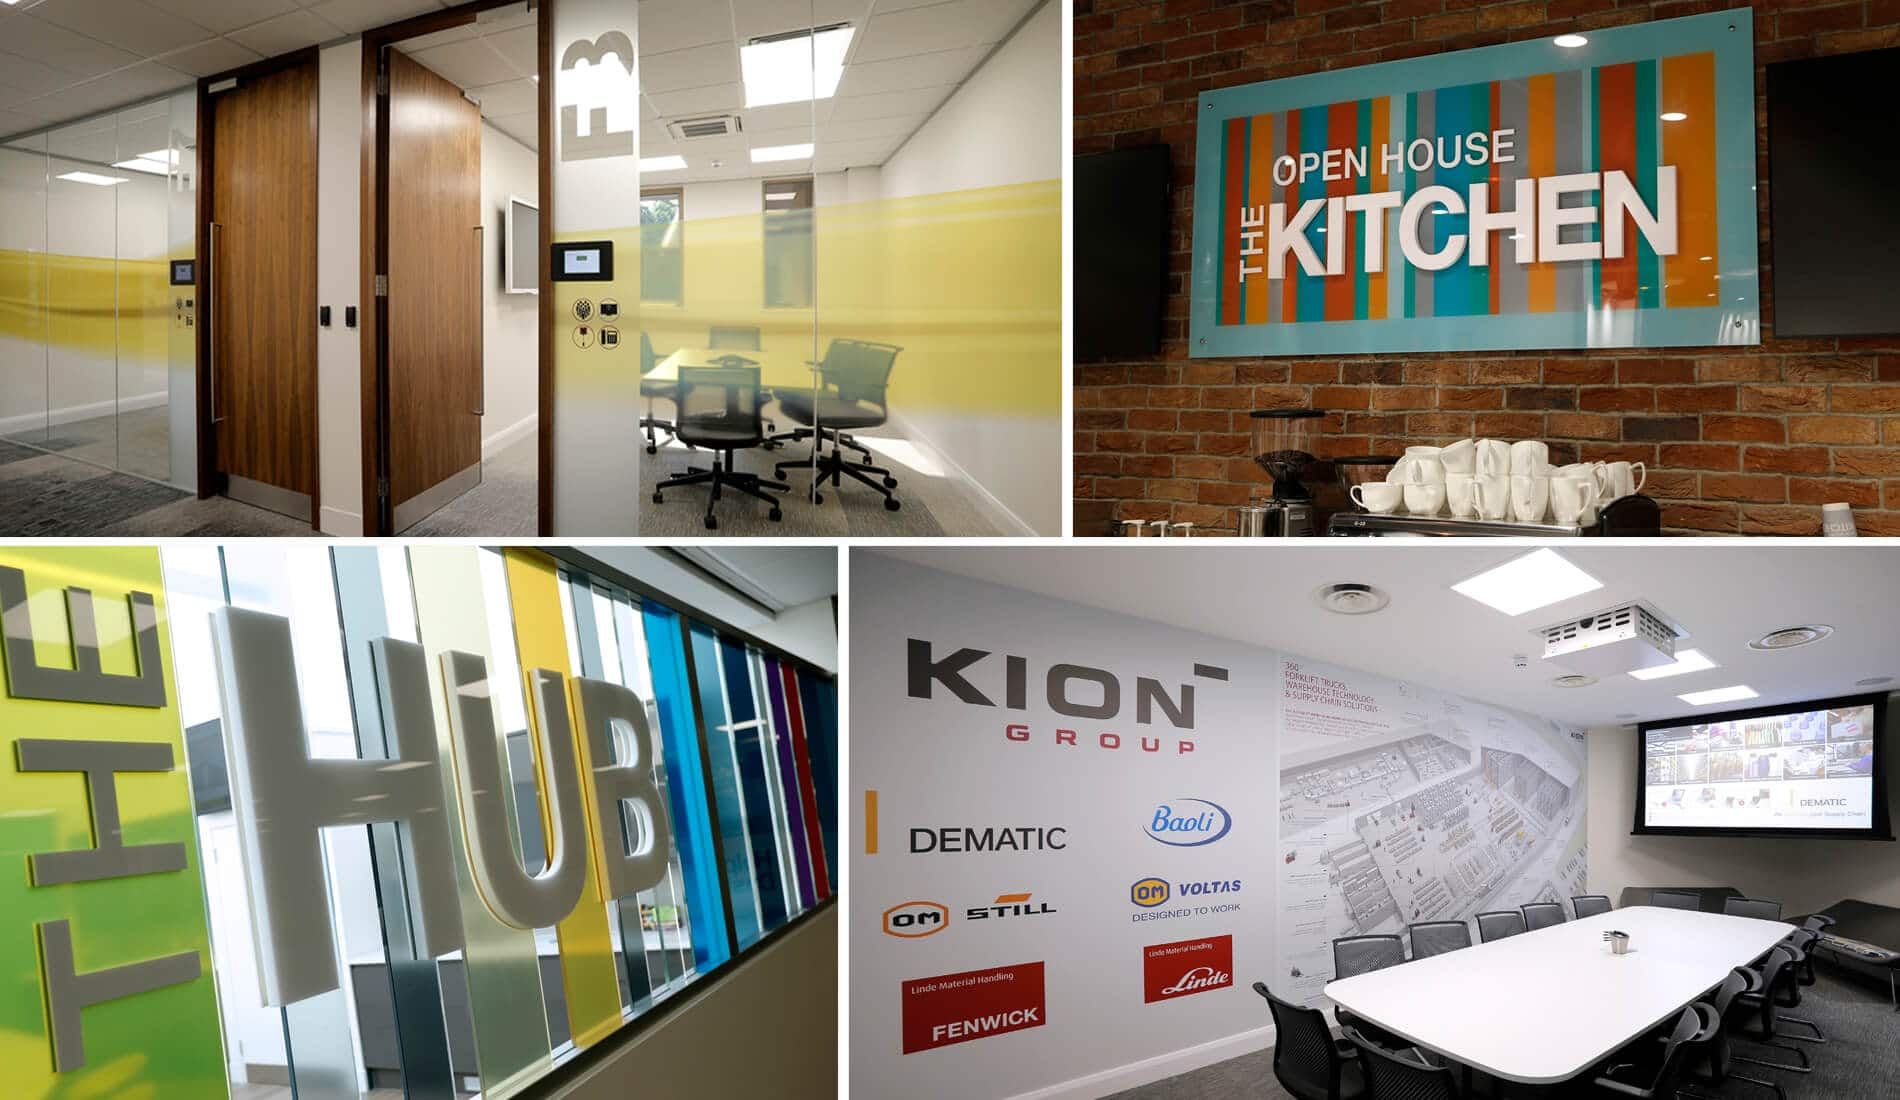 Signage designs that creative touch design created for dematics offices, colourful and eye catching